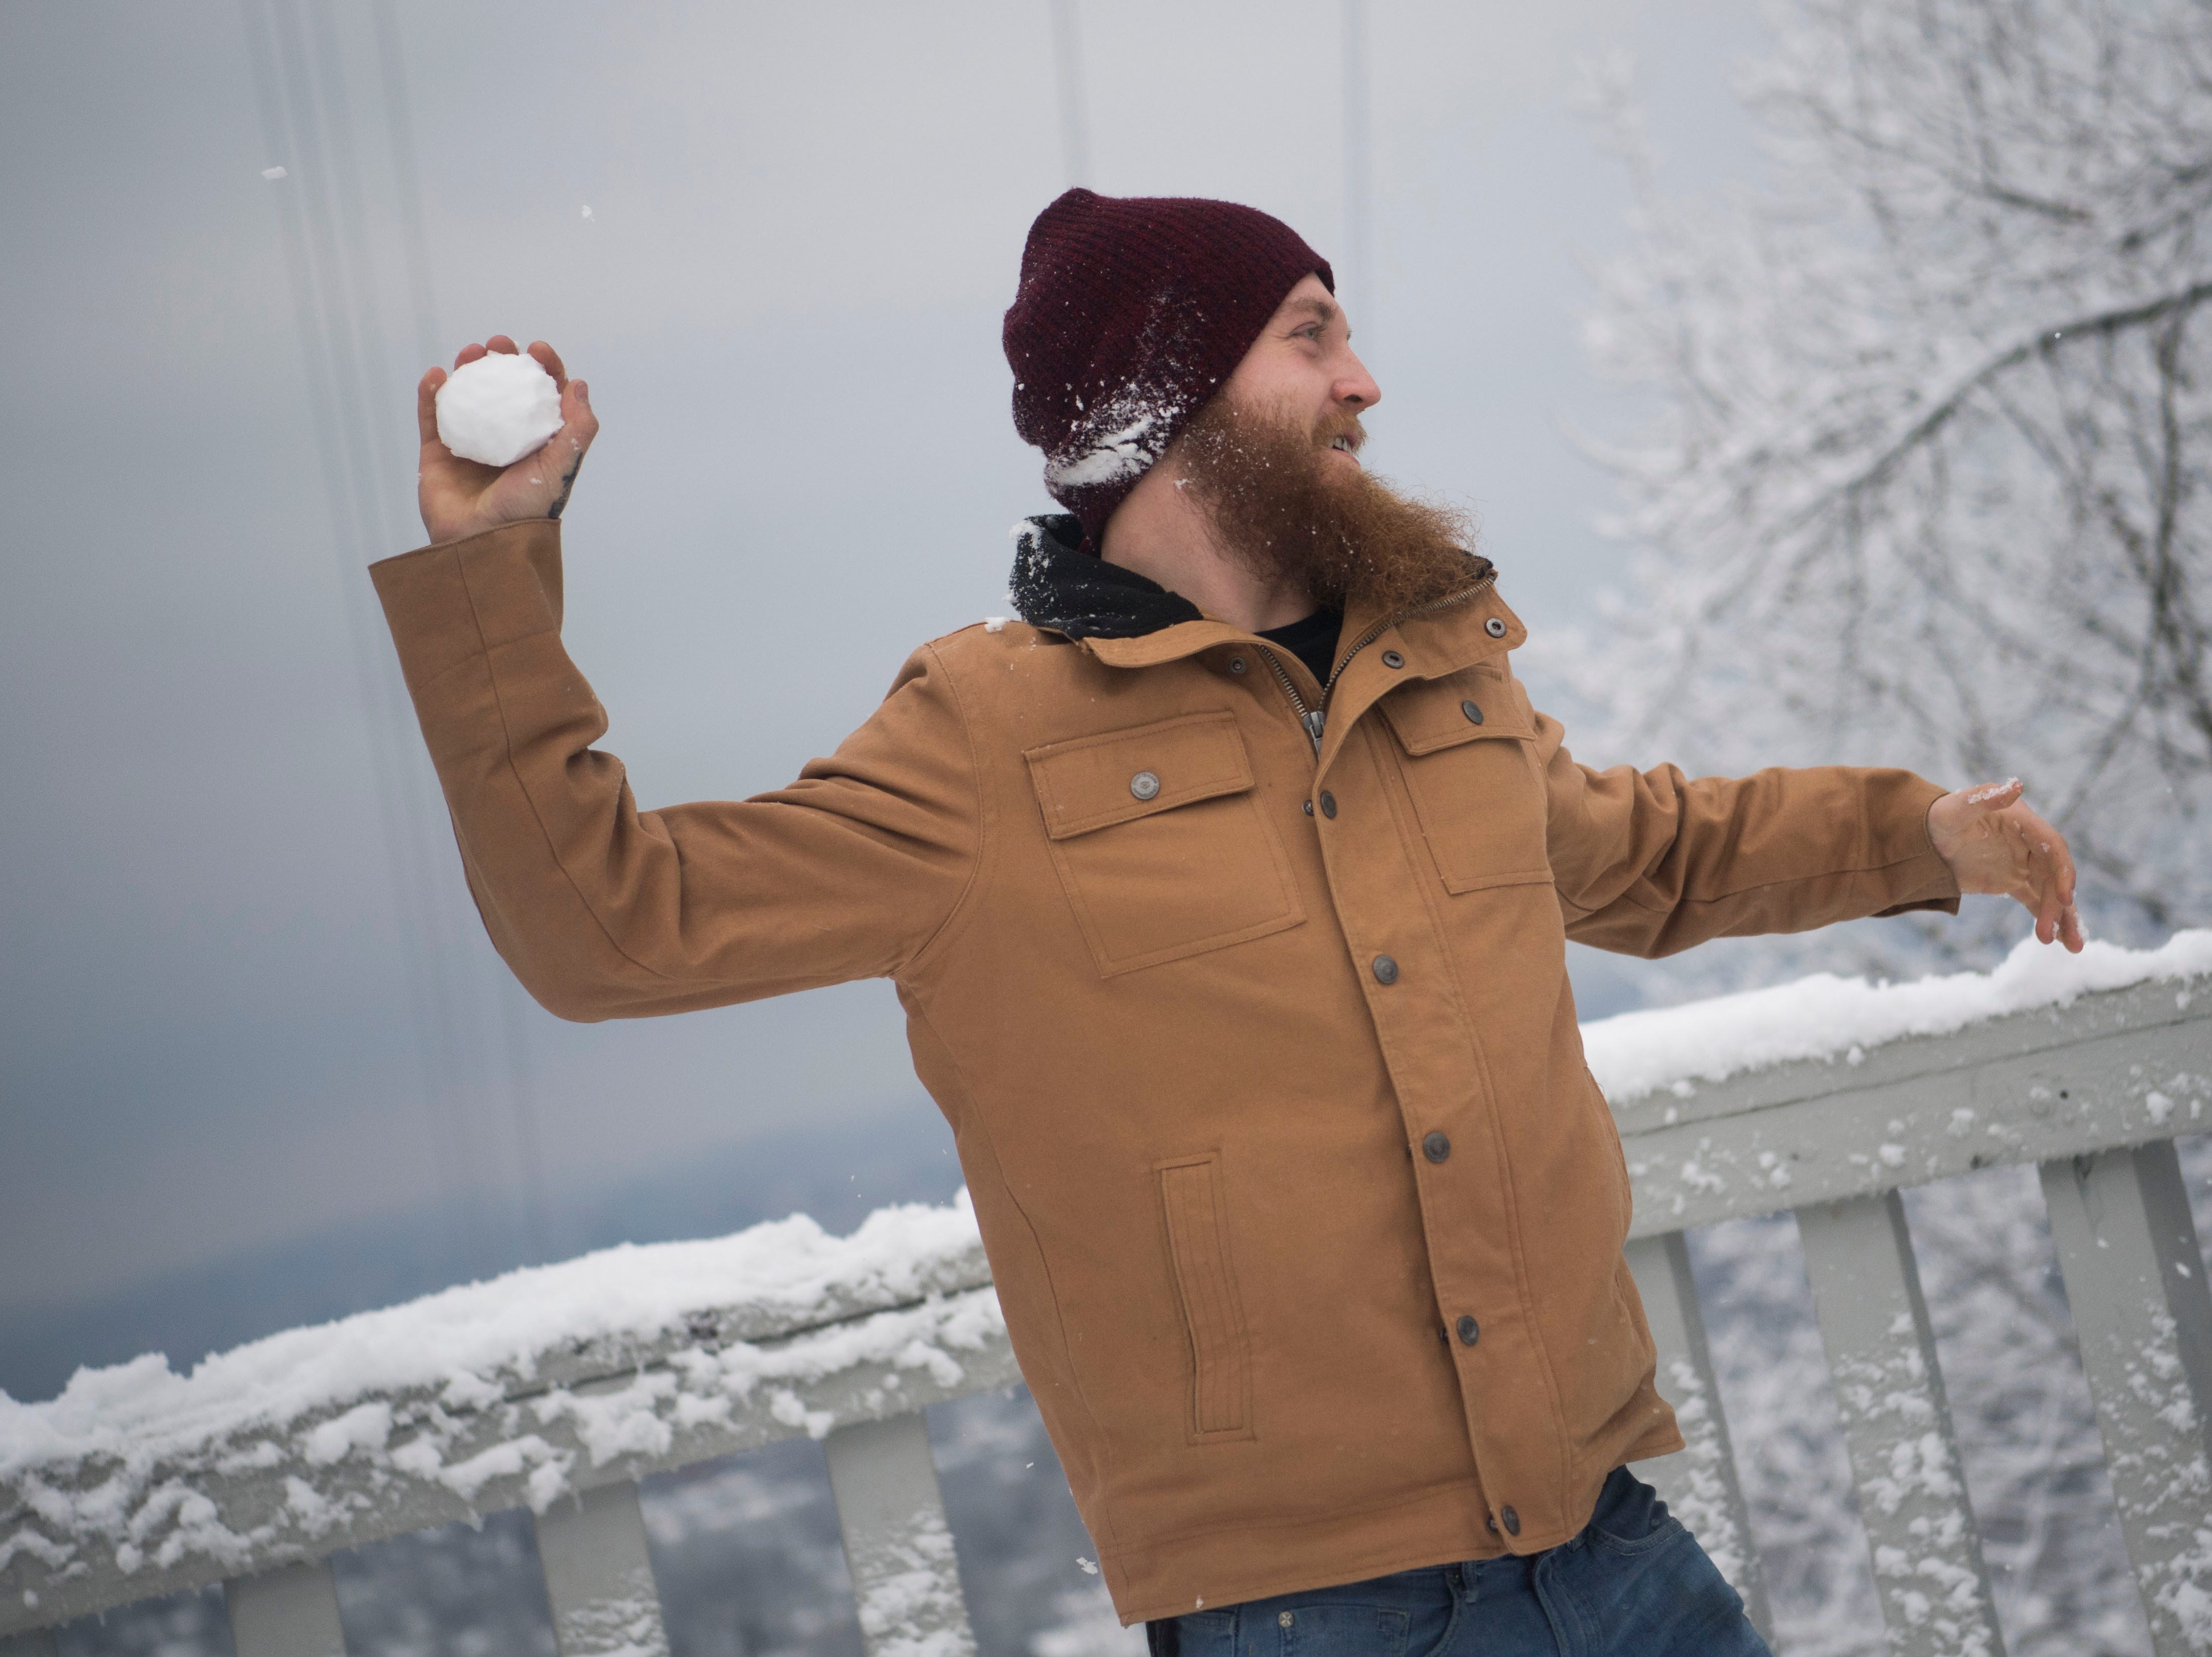 Austin Atkins winds up to throw a snowball at his brother on top of Sharps Ridge in North Knoxville Tuesday, Jan 29, 2019. The Knoxville area received about an inch of snow.